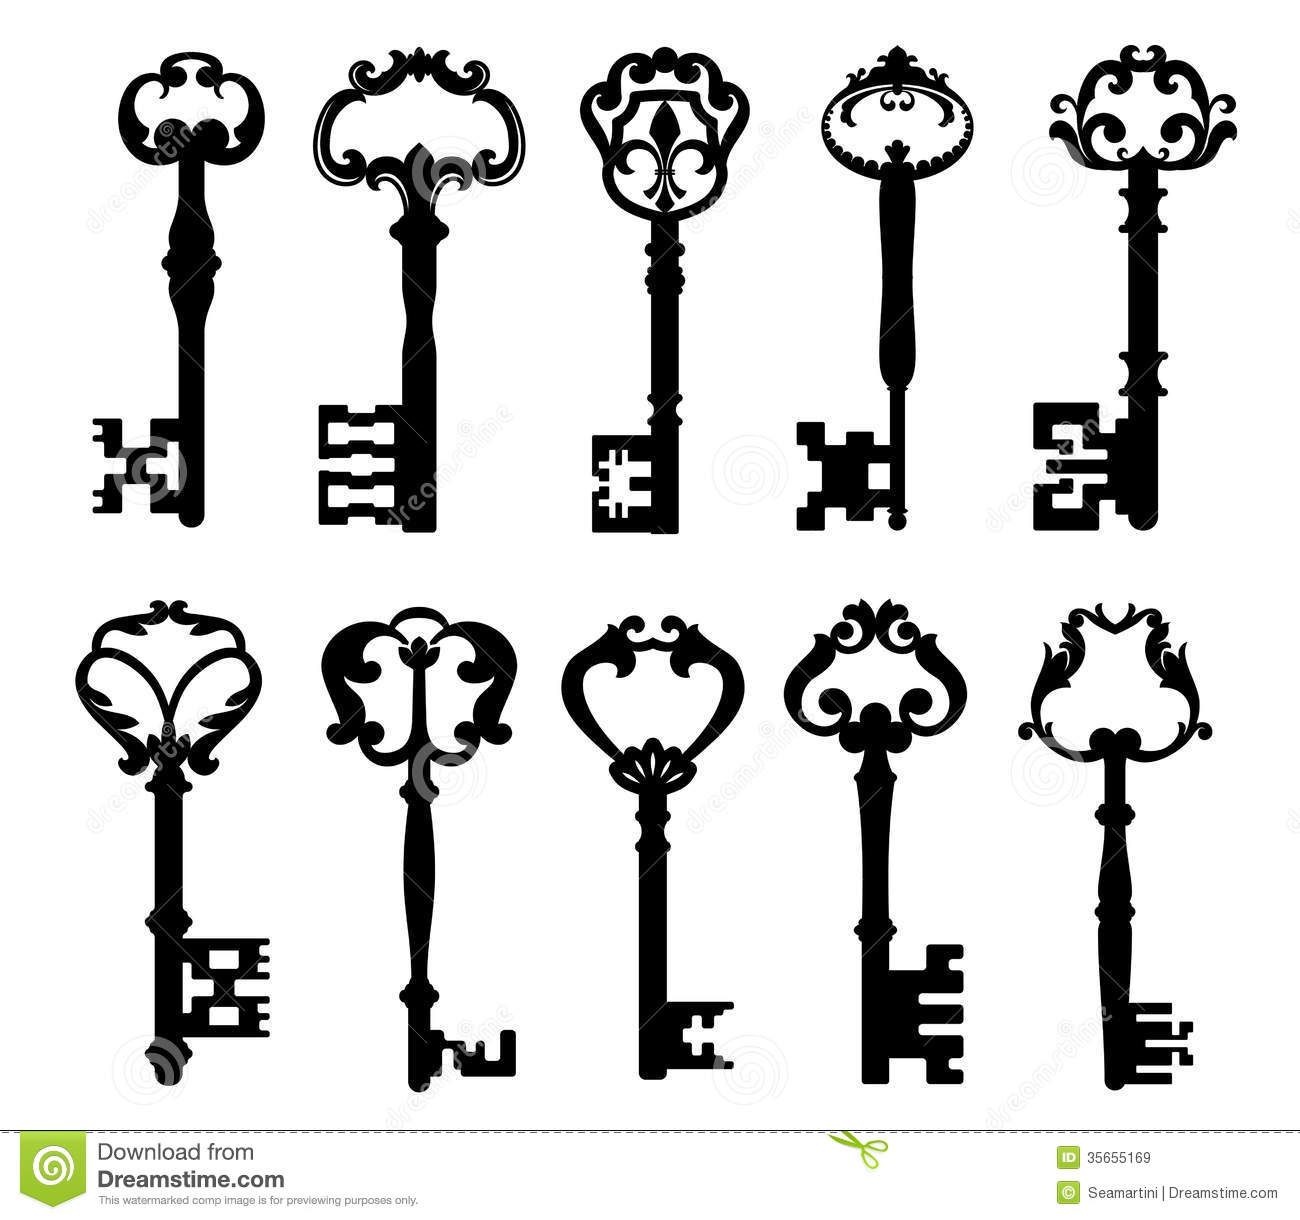 Royalty Free Stock Images Vintage Keys Isolated White Retro Concept Design Image35655169 also Houseplan036D 0045 together with 356d42a288e25090 Electrical Plan Ex le Electrical Floor Plan Drawing moreover Worker House Painter Contour 6192536 moreover Lighting Plan. on free small house plans